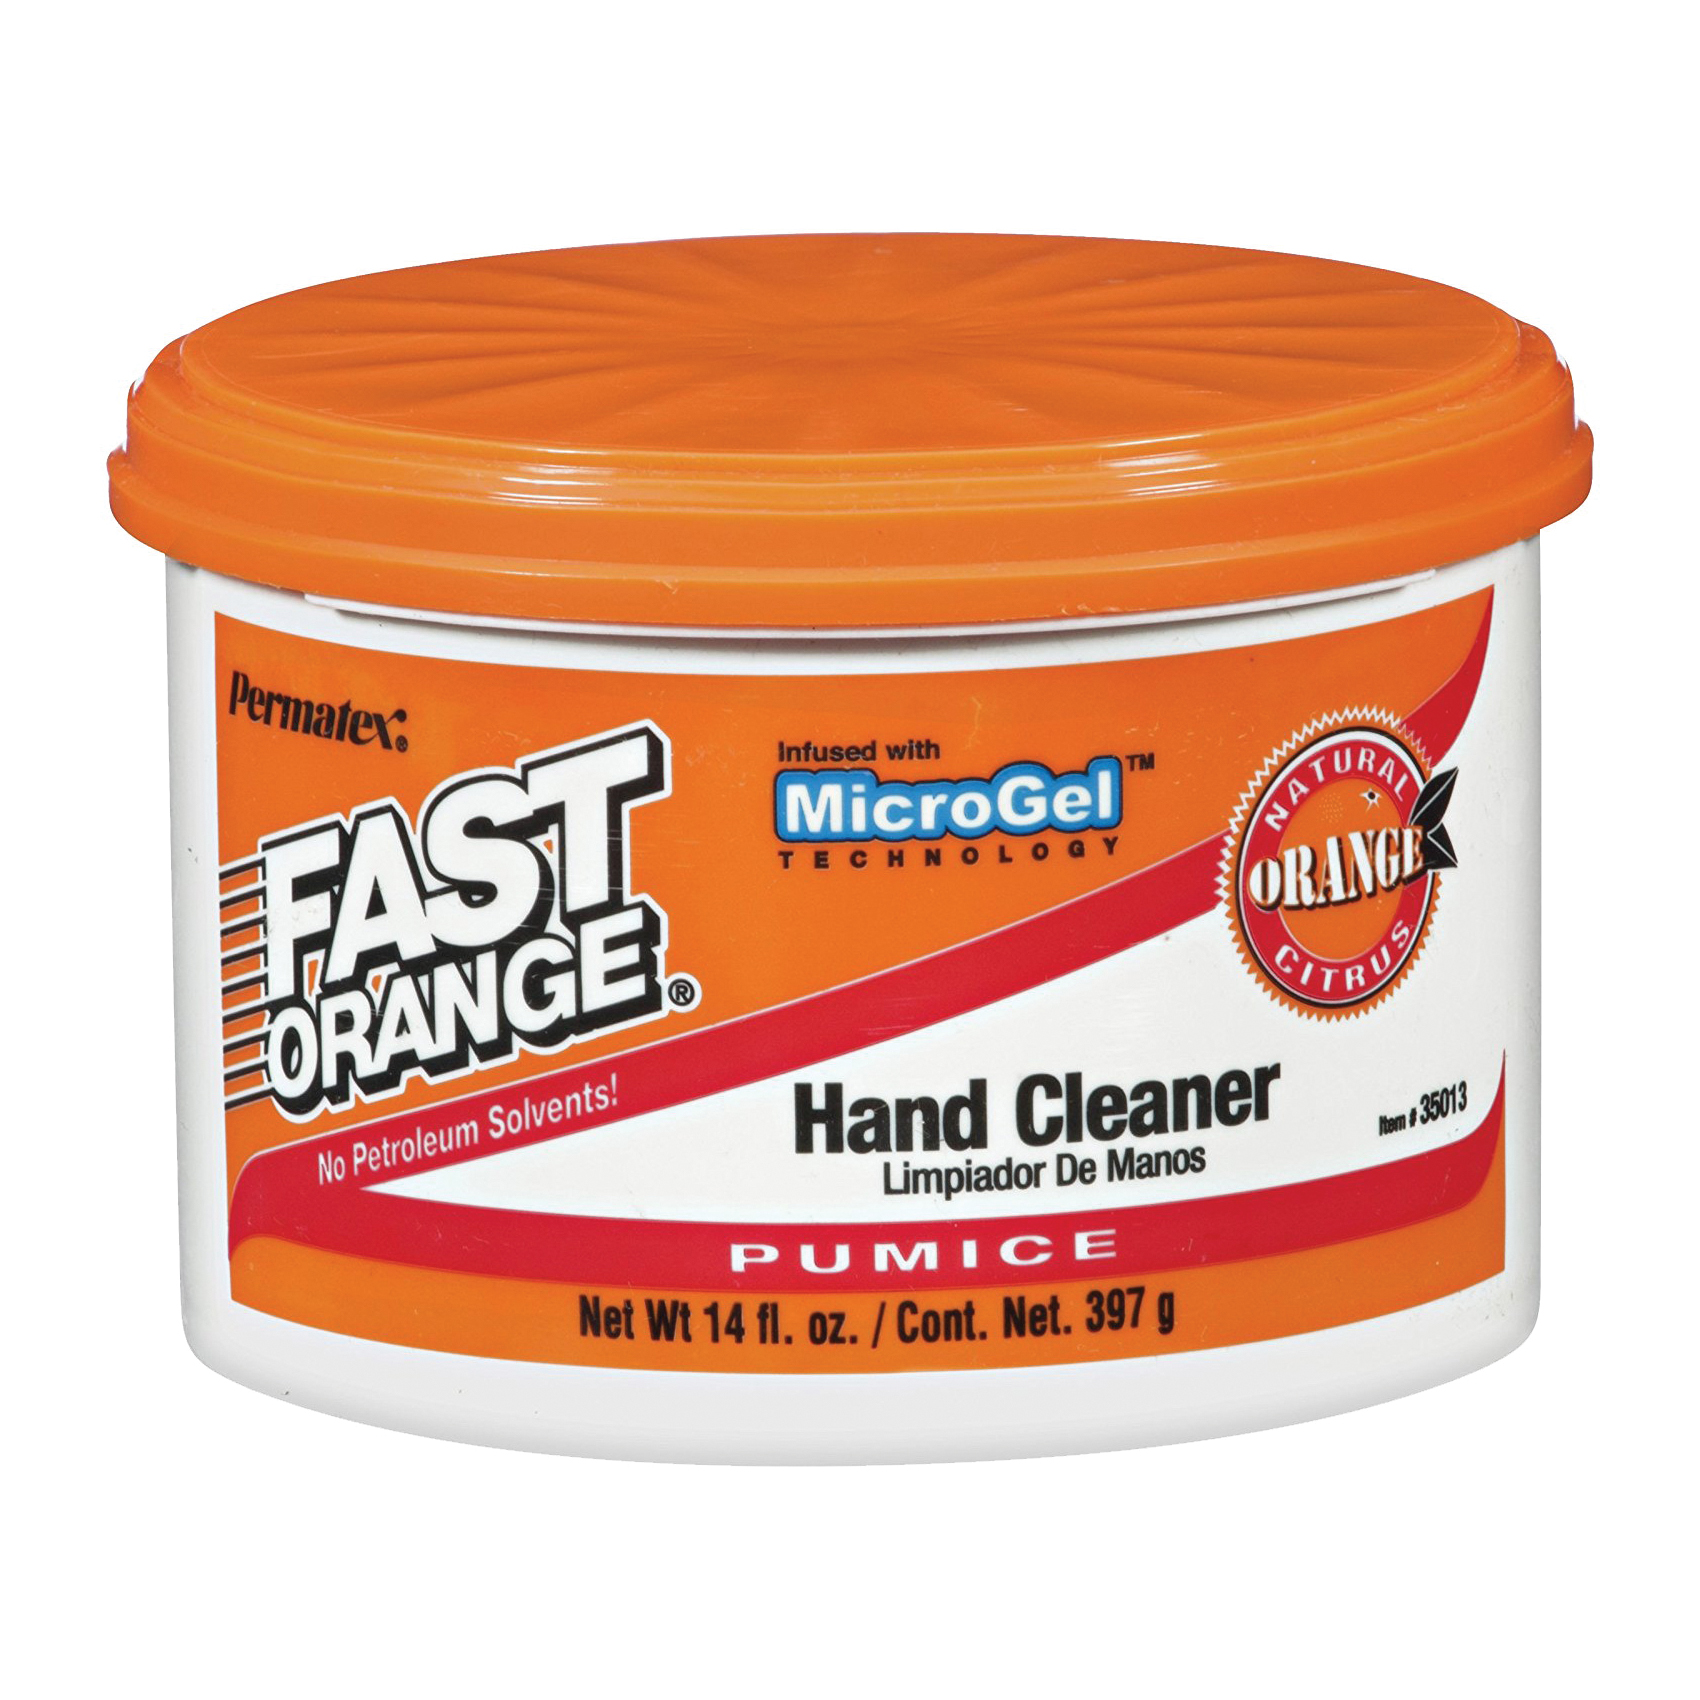 Picture of Permatex 35013 Hand Cleaner, Paste, White, Citrus, 14 oz Package, Tub